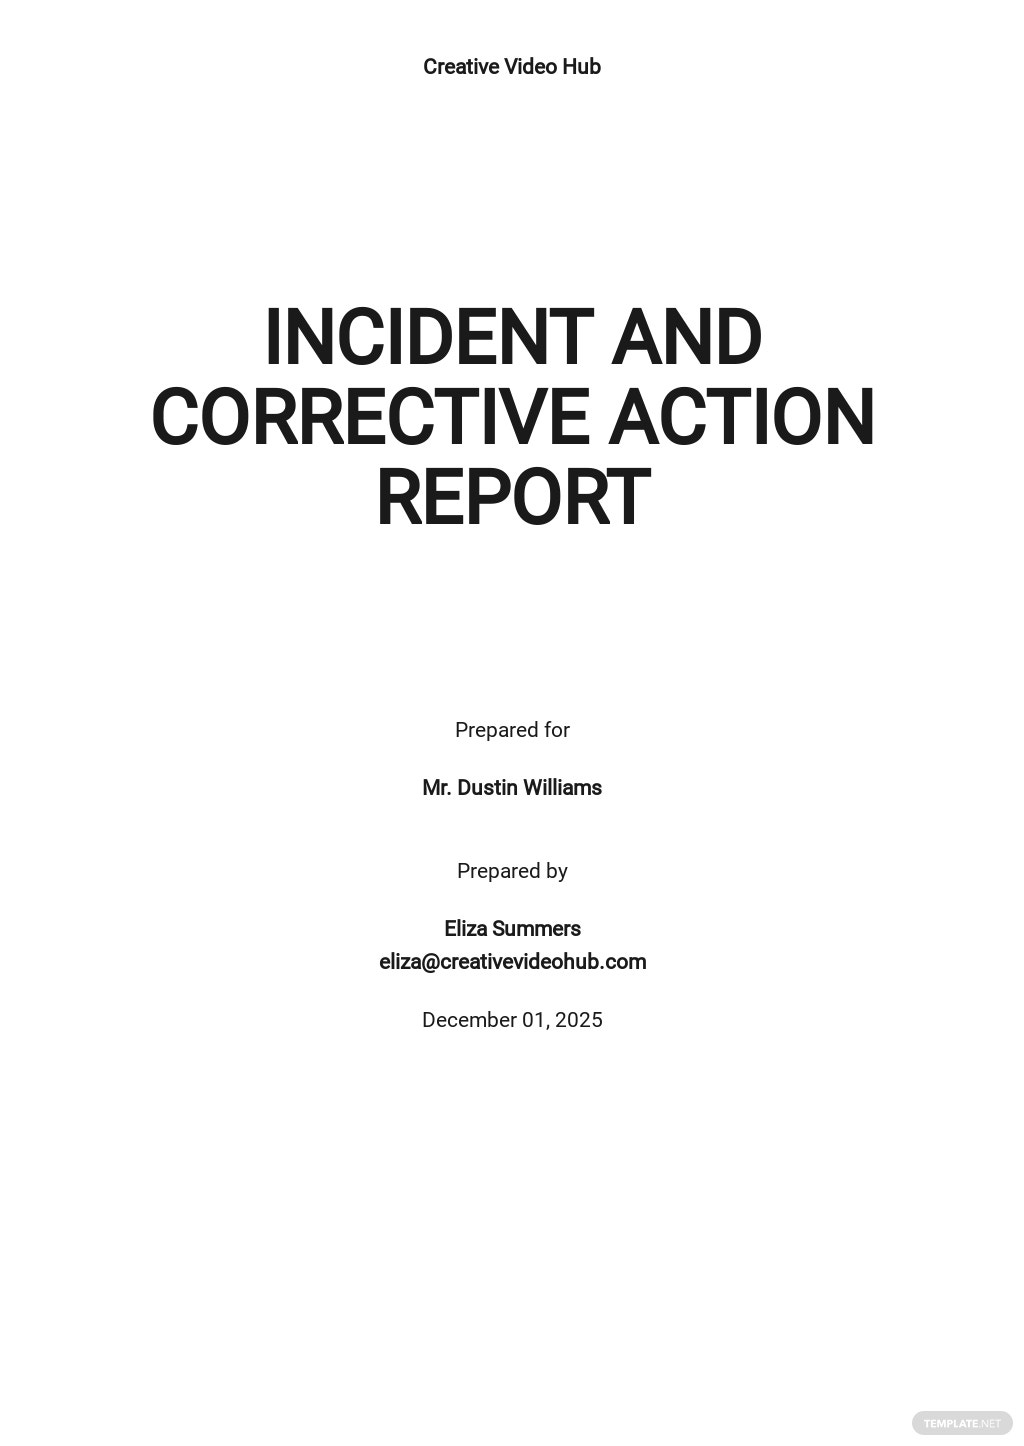 Incident and Corrective Action Report Template